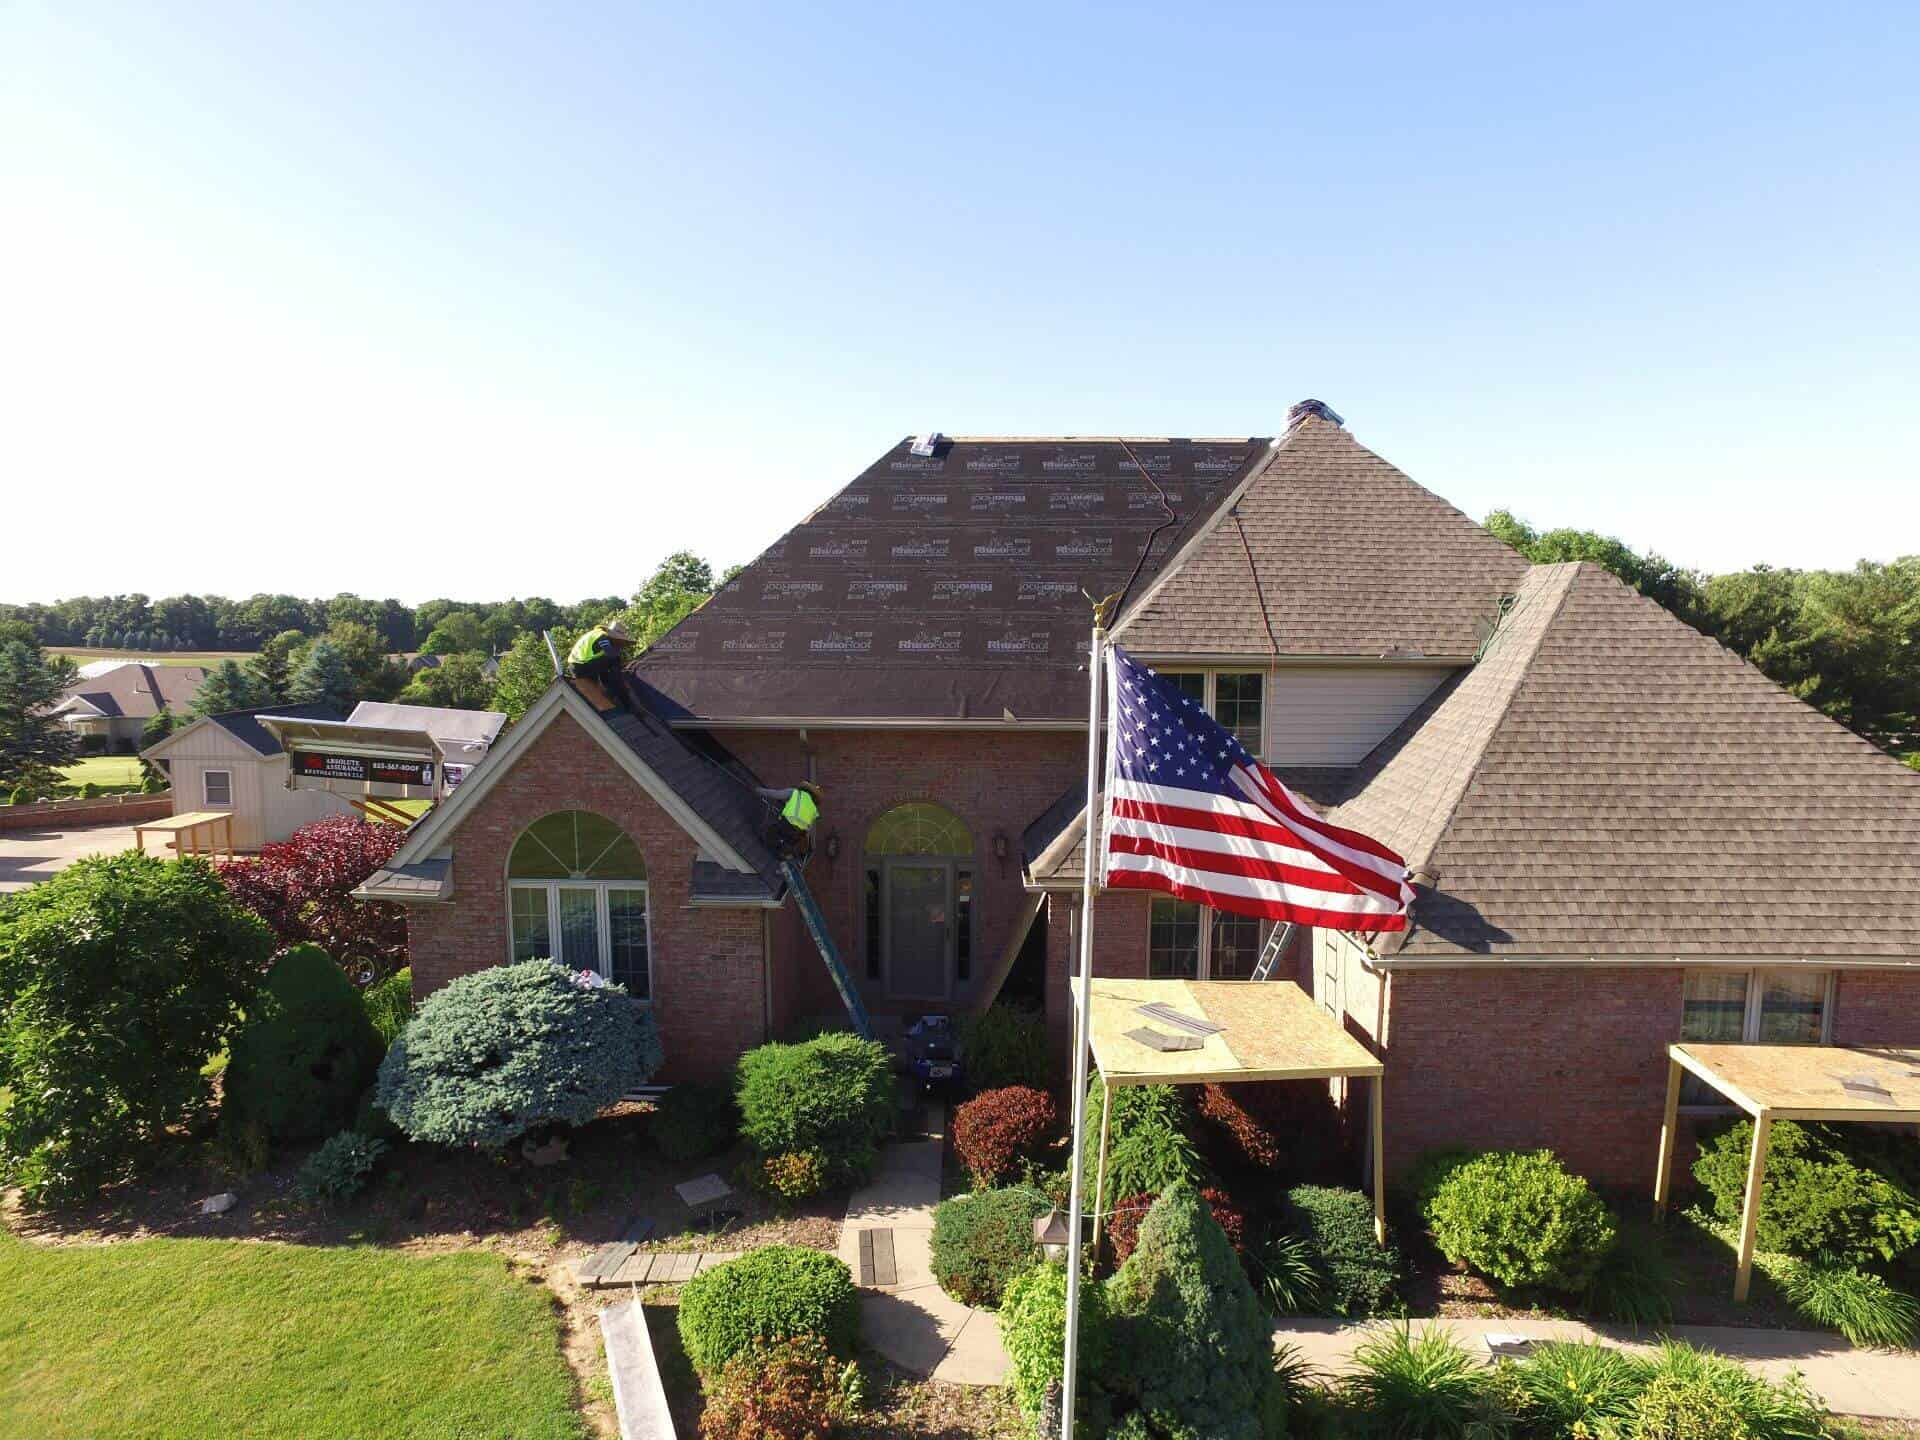 roofing contractor is on a large house doing a roof replacement with American flag flying in front